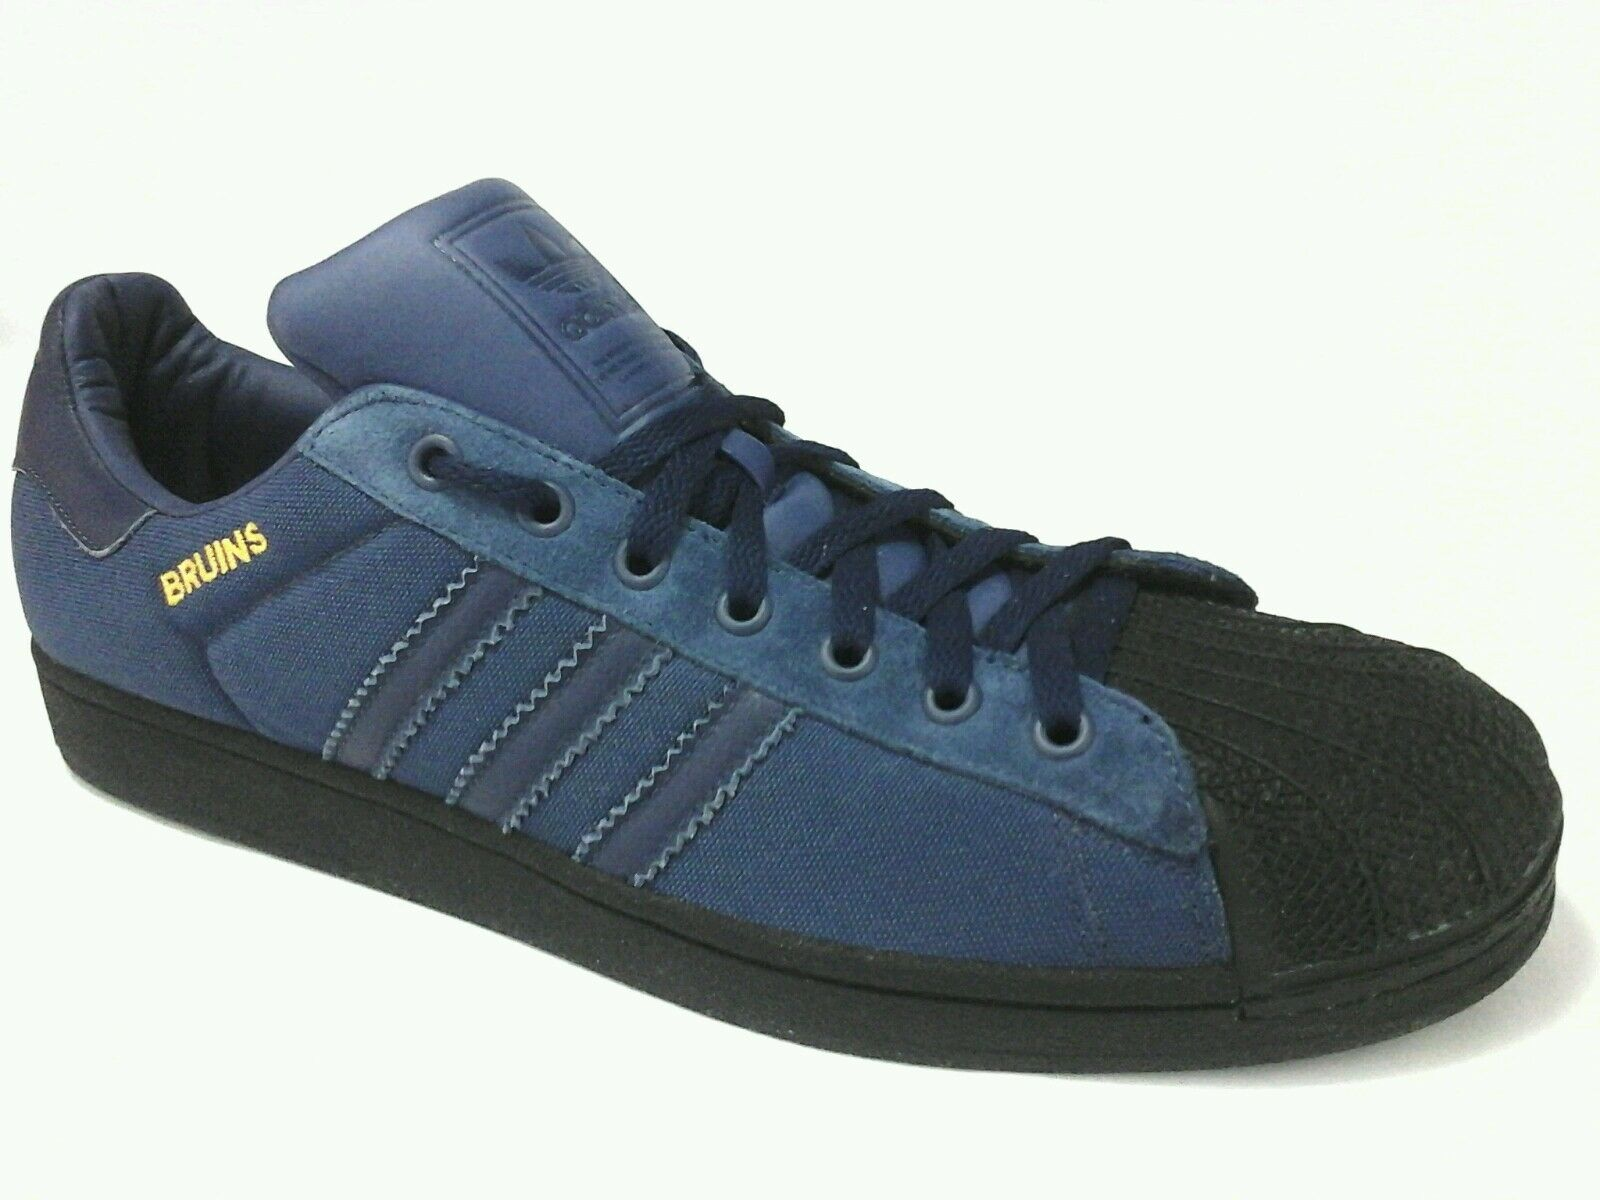 ADIDAS shoes UCLA Bruins Gameday Superstar Sneakers bluee Shell Toe Men's US 15